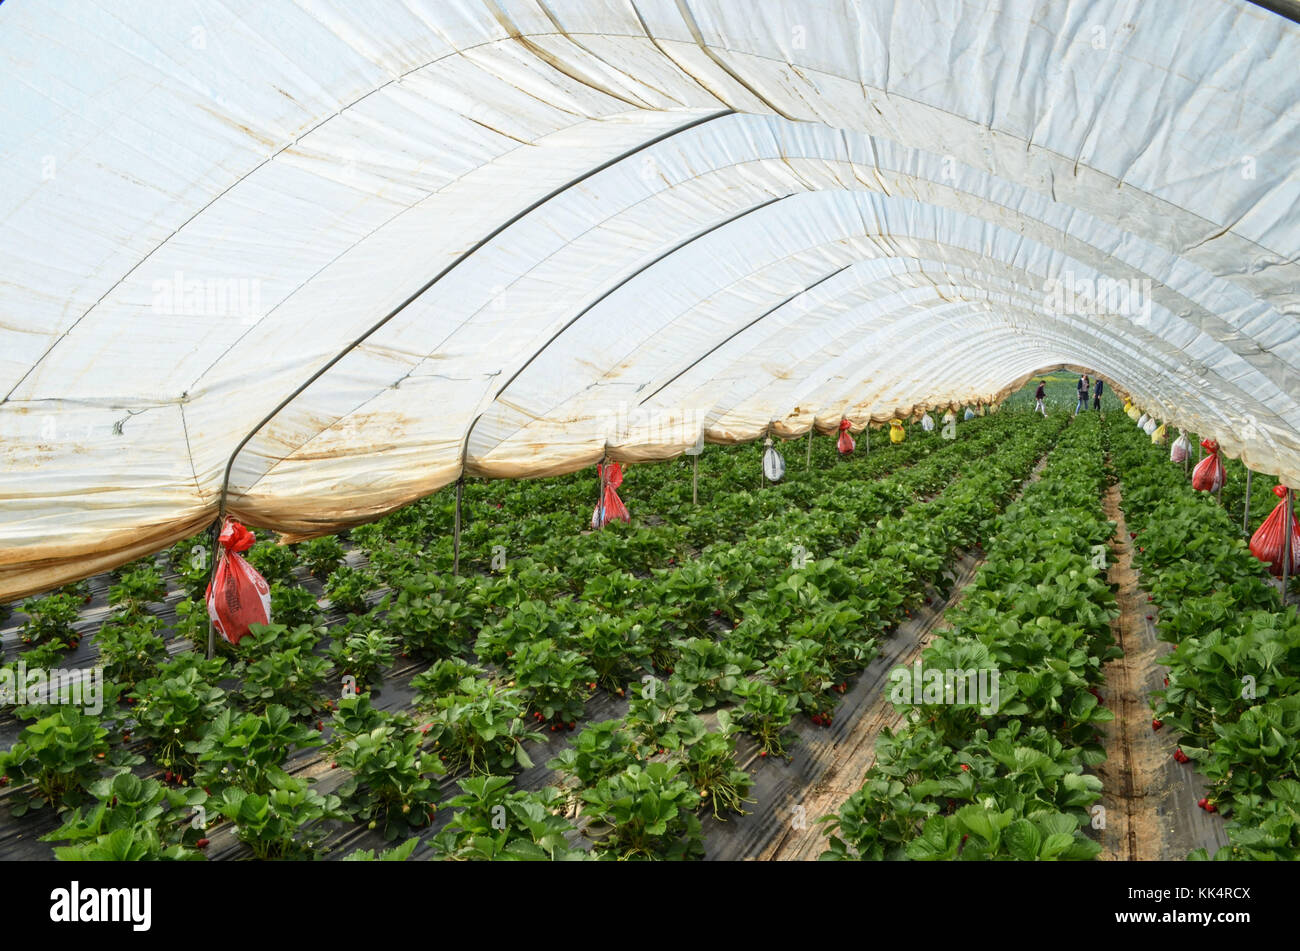 Italy; Tuscany: Capalbio. Strawberries growing in greenhouses in Capalbio, a town in the Grosseto Province. - Stock Image